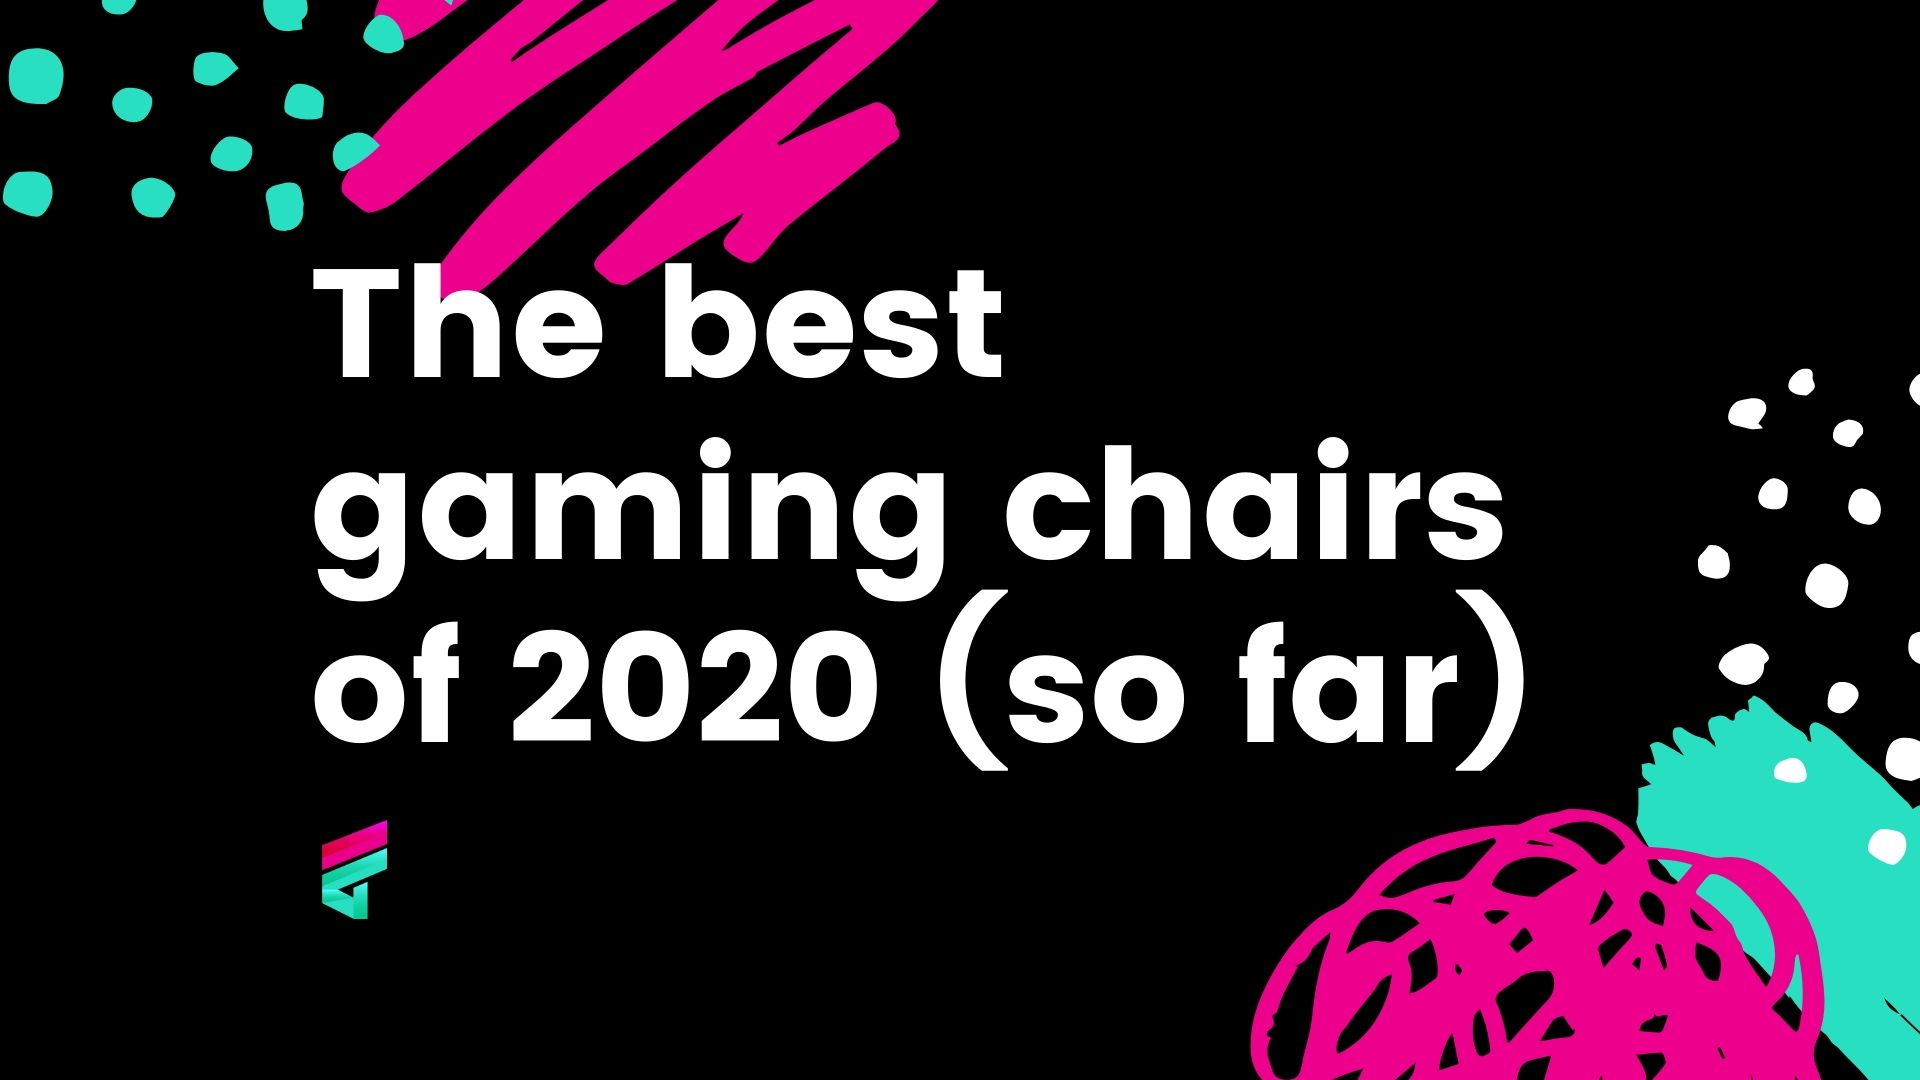 Best gaming chairs of 2020 (so far)